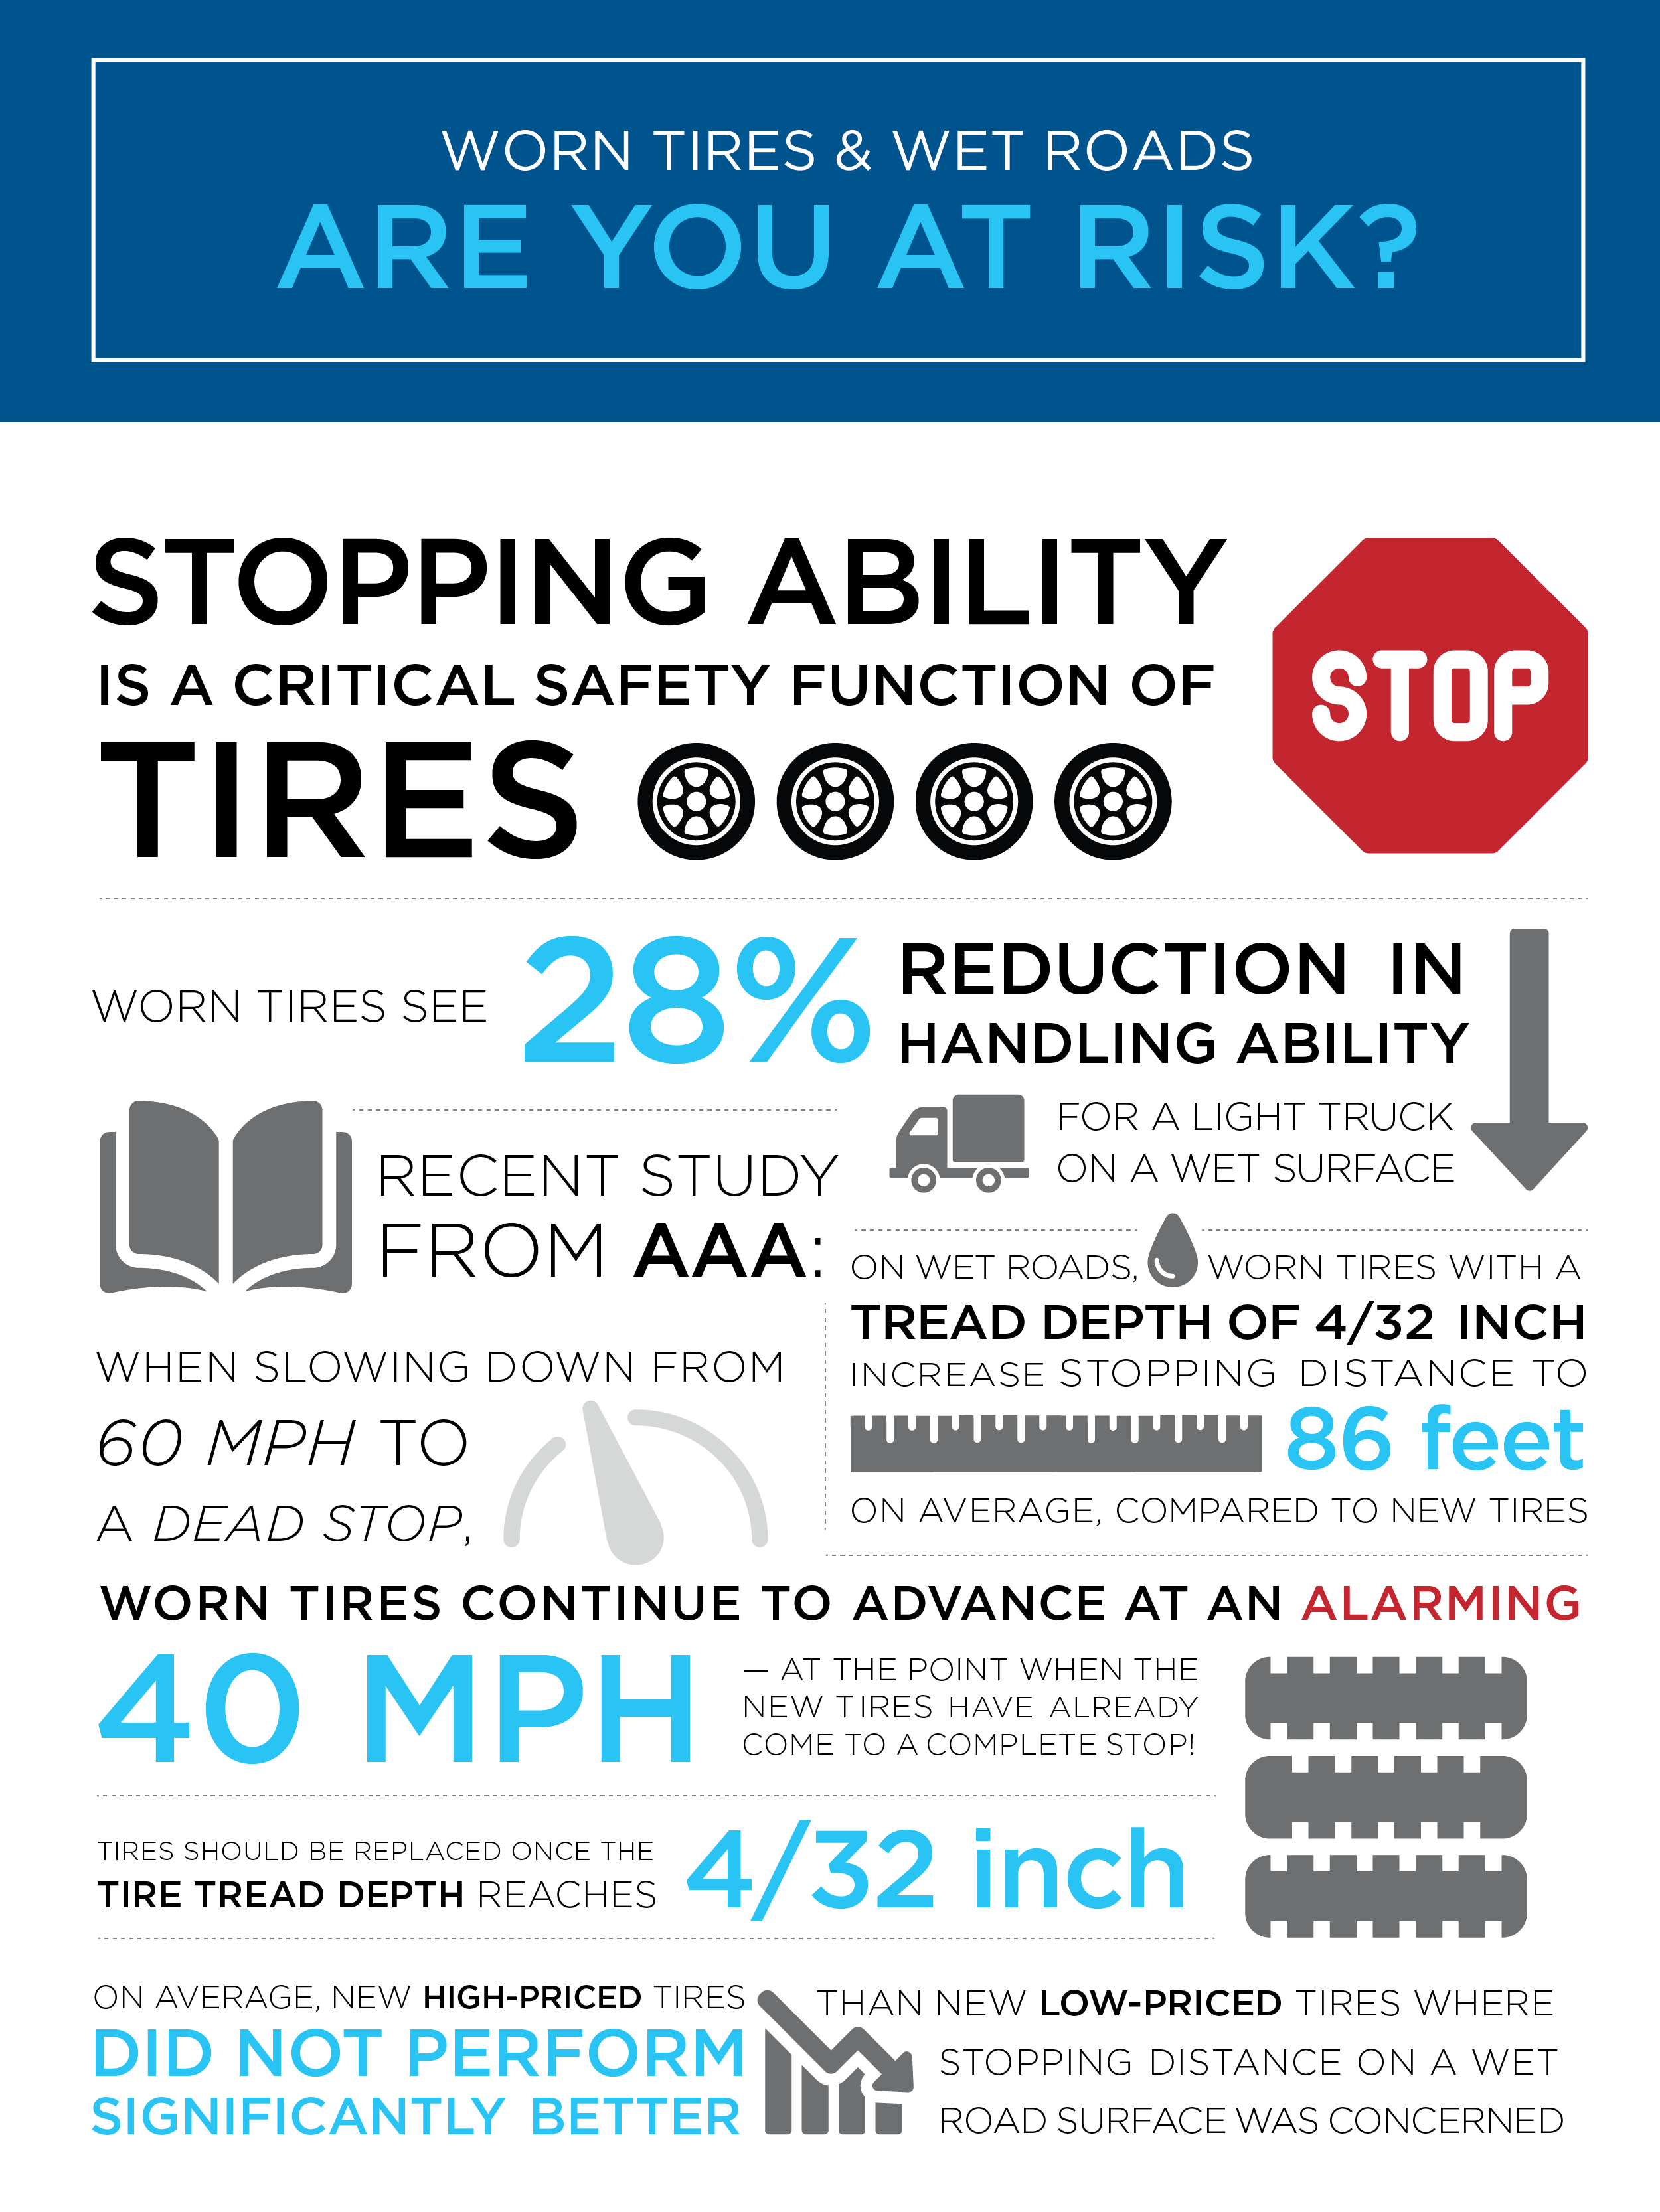 Worn tires and wet roads infographic.